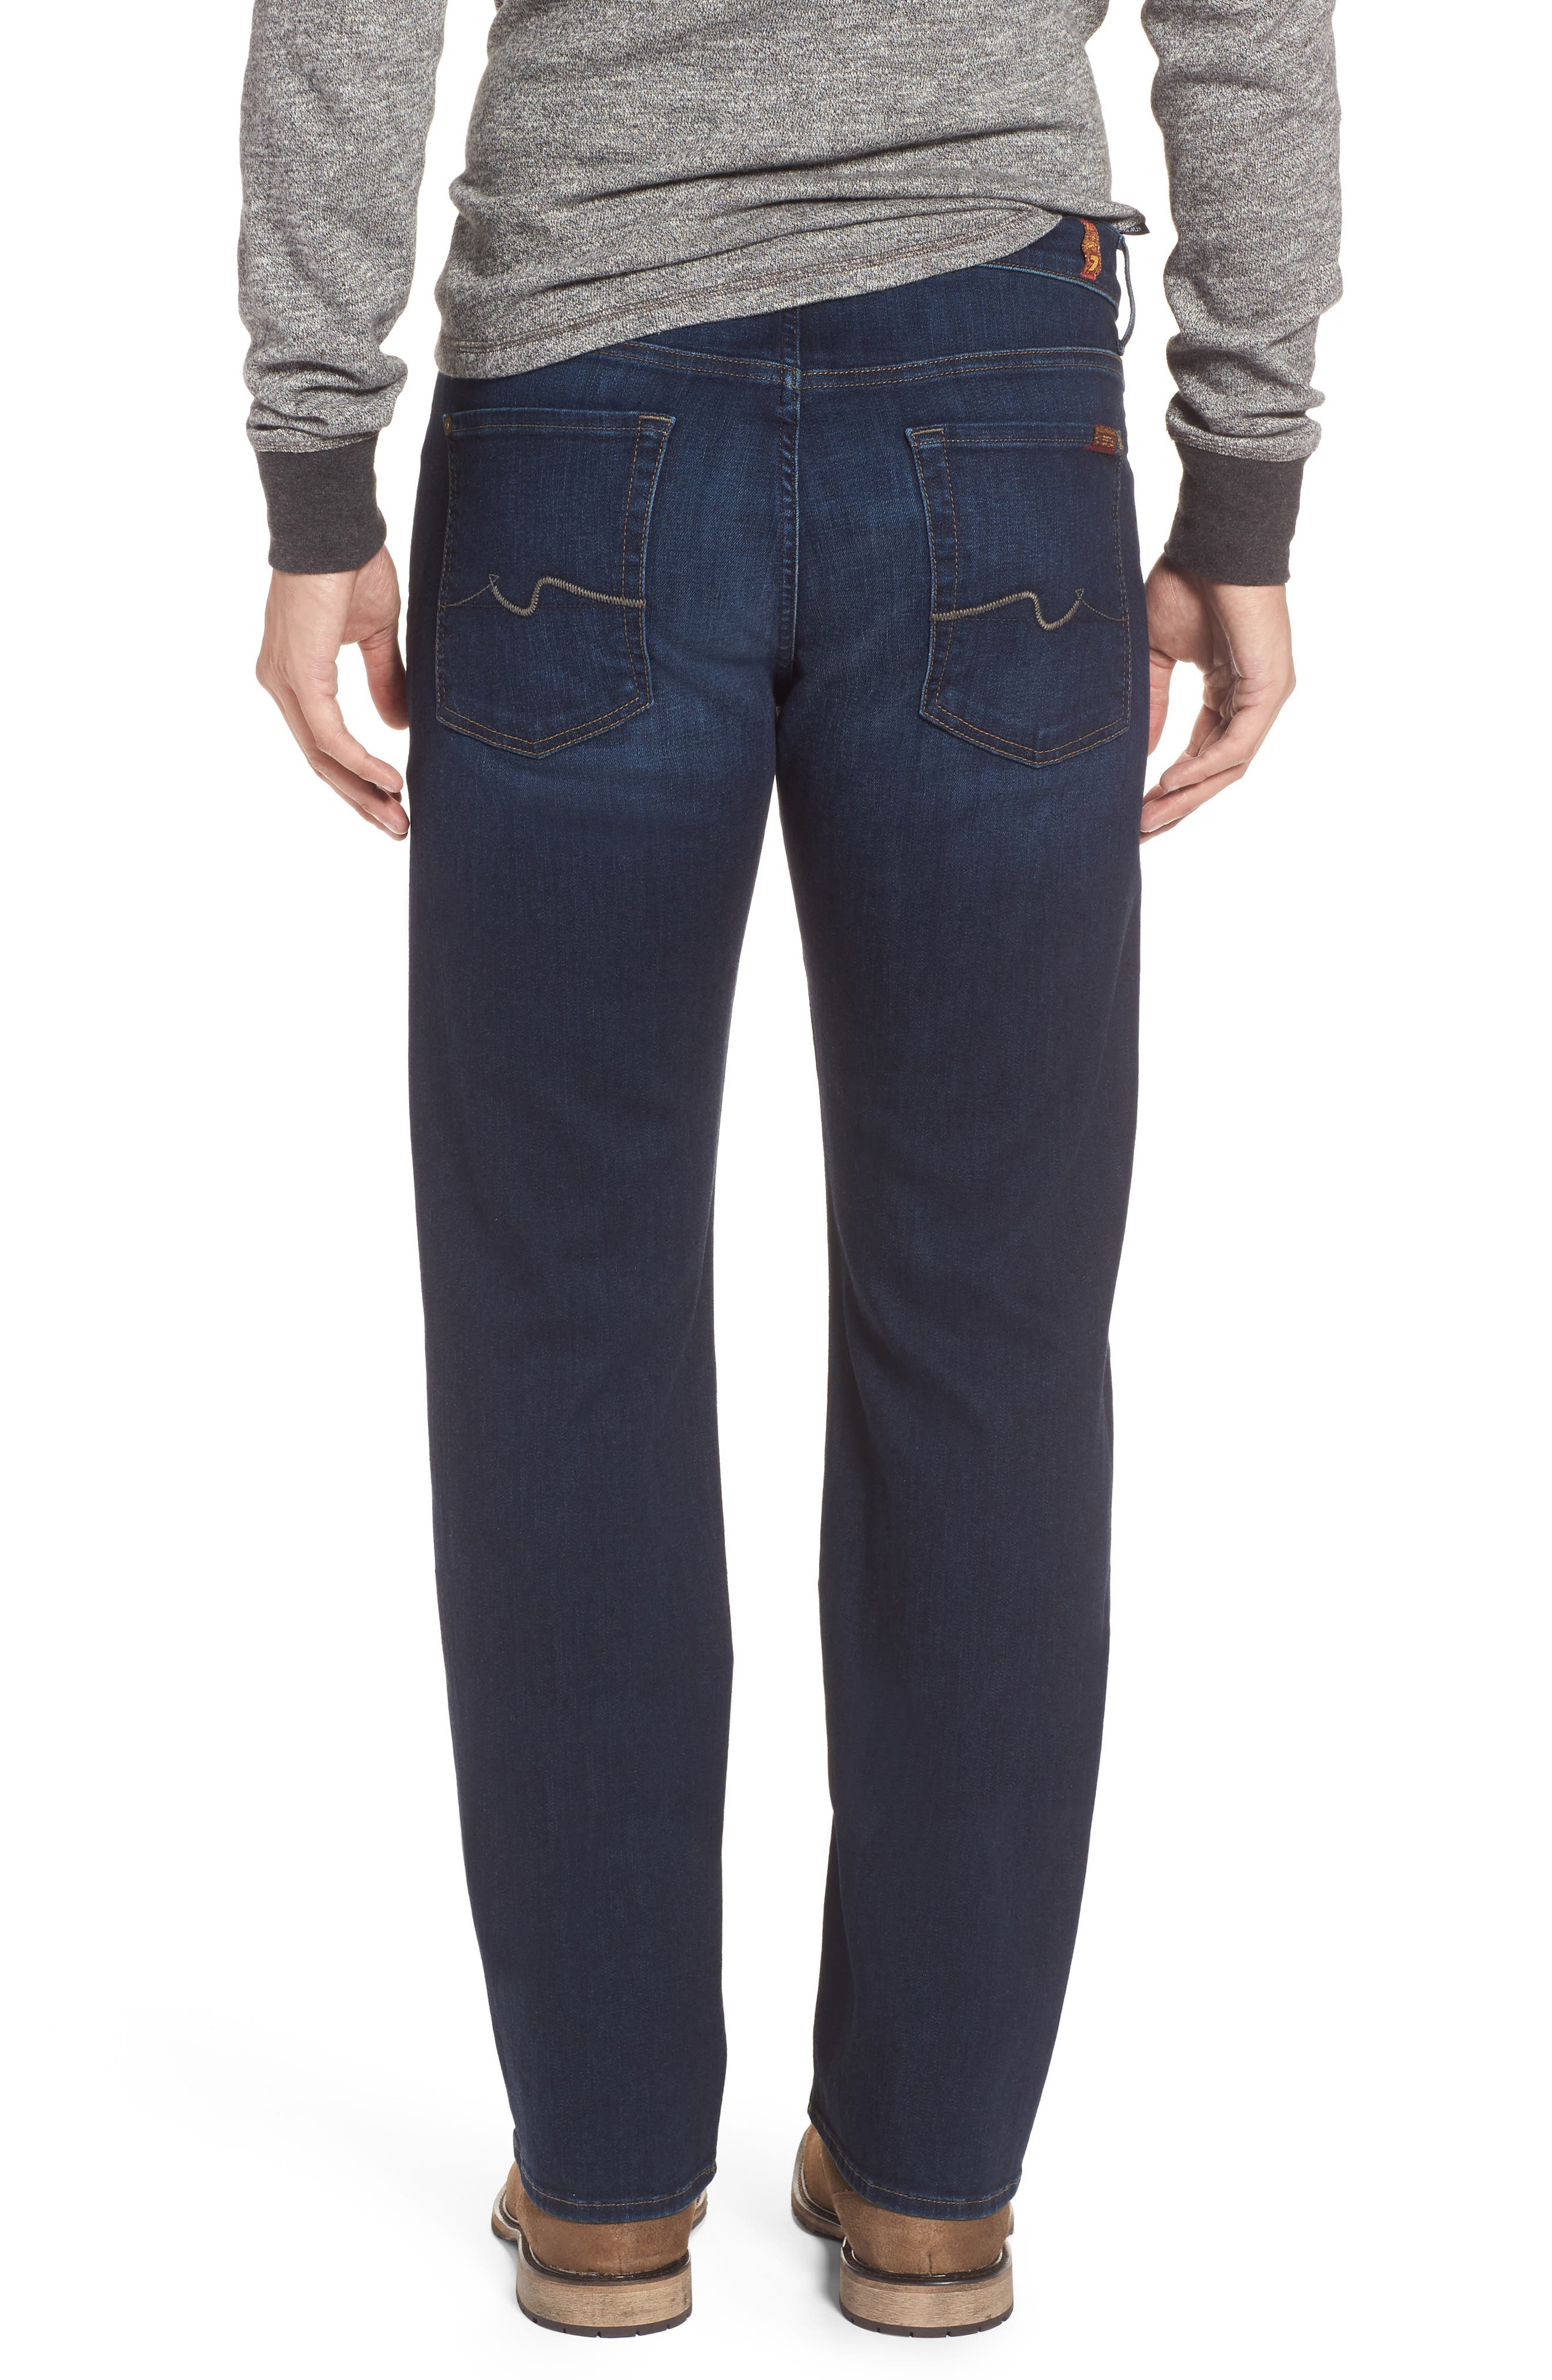 Austyn Relaxed Fit Jeans,                             Alternate thumbnail 2, color,                             Valley Stream